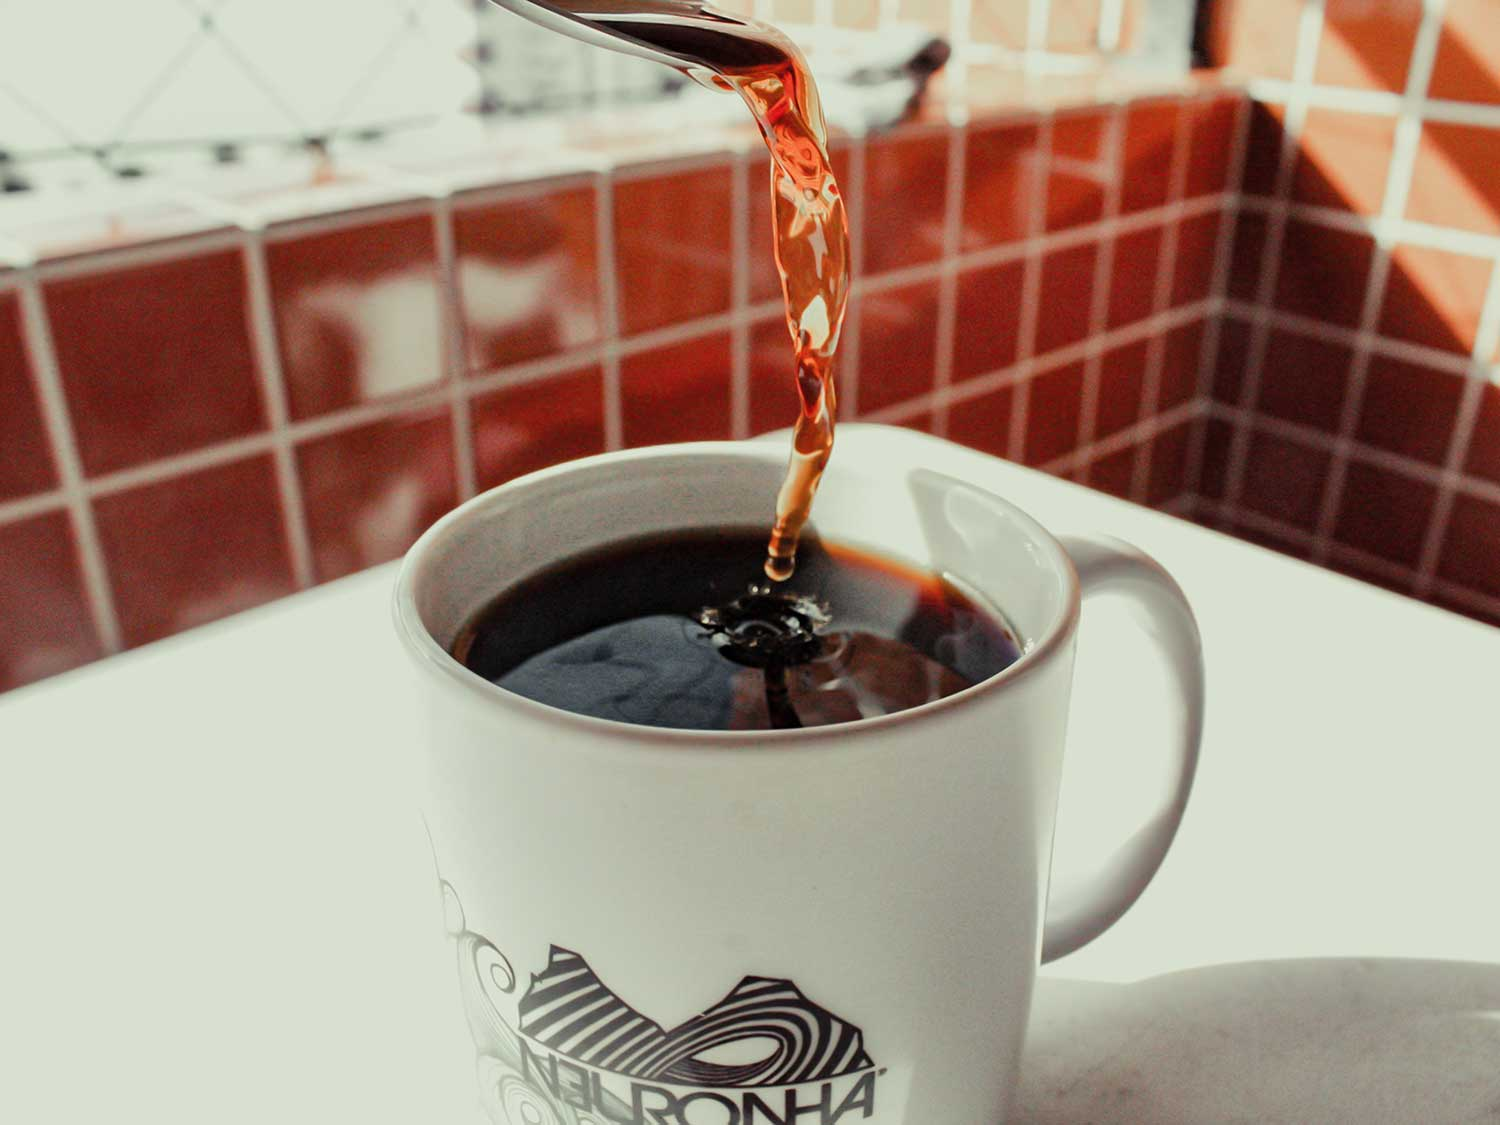 Pouring out coffee